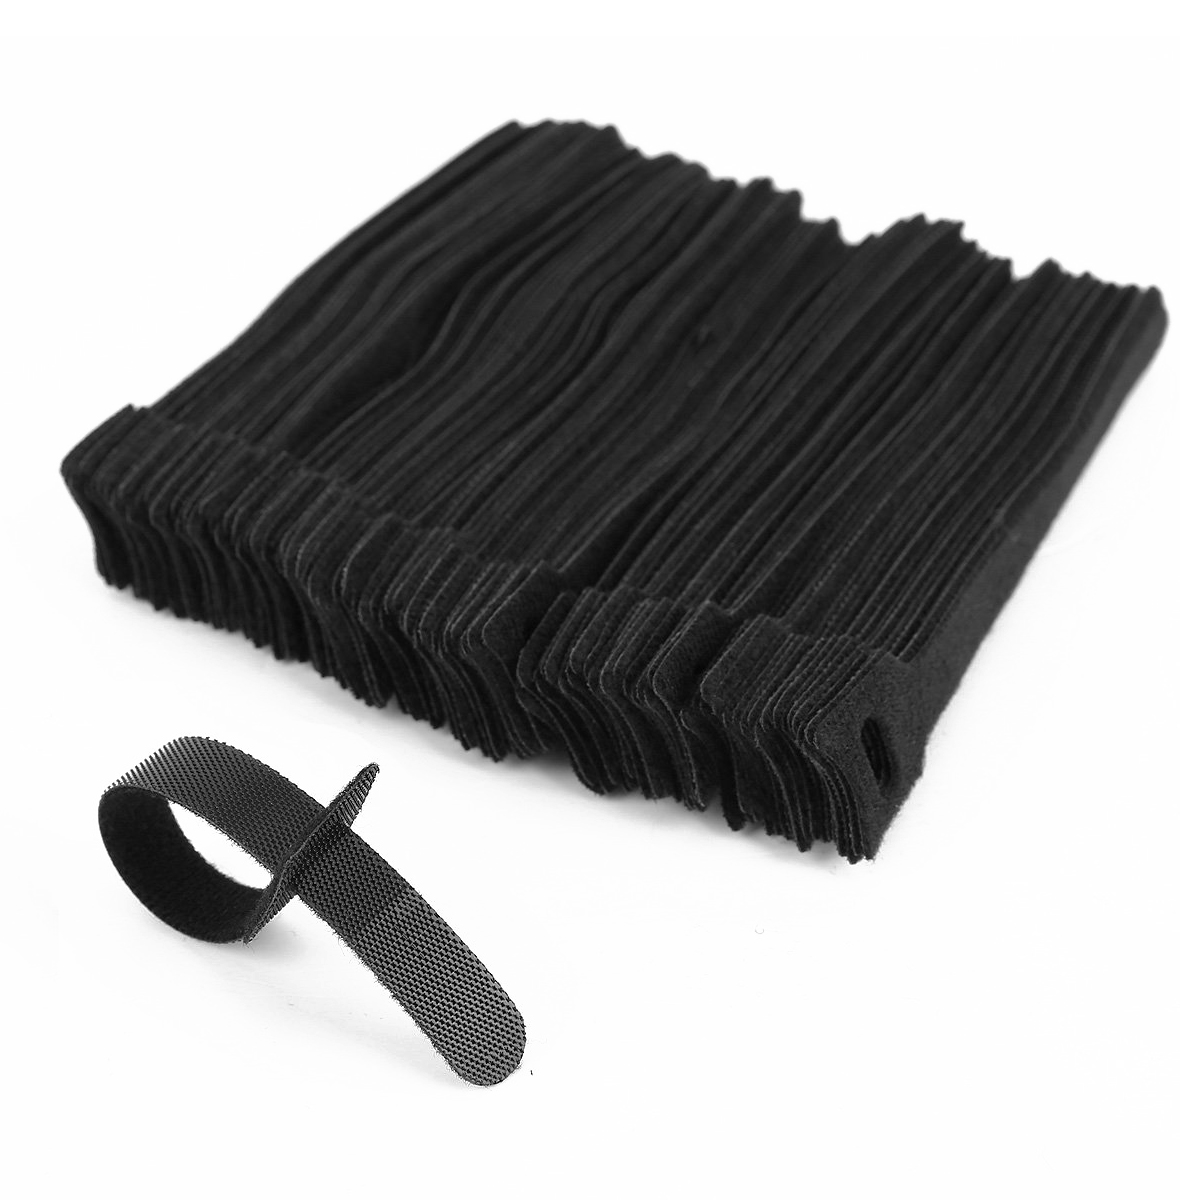 100pcs 15cm adjustable black Self-locking nylon cable tie wire binding wrap straps Zip Trim Wrap Cable Loop Ties Drop shipping